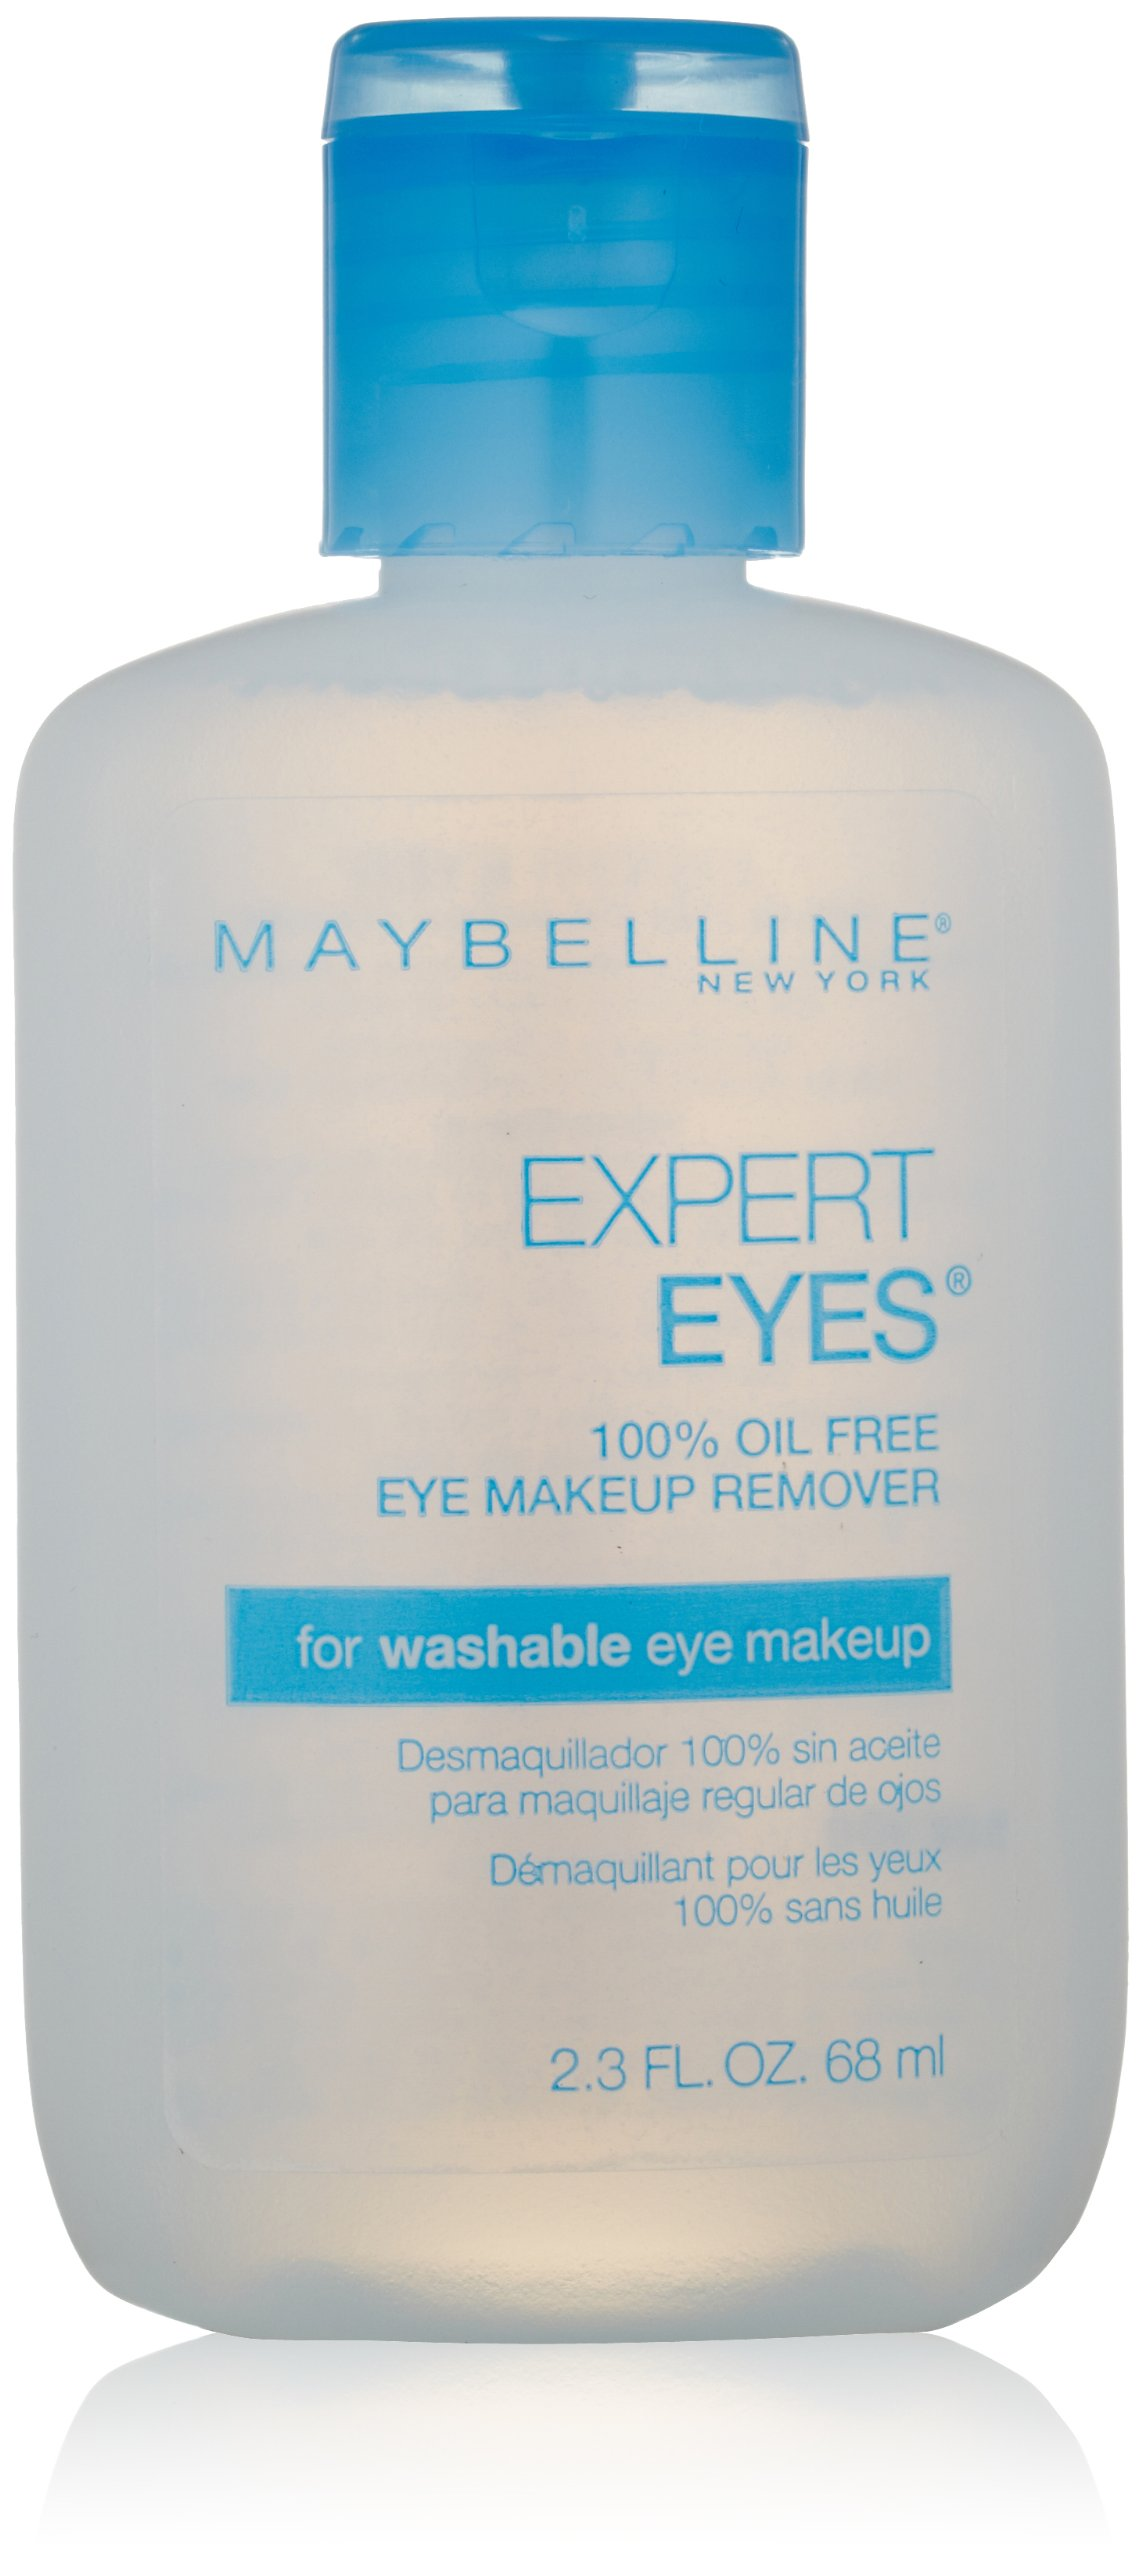 Cheap Almay Oil Free Eye Makeup Remover Find Almay Oil Free Eye